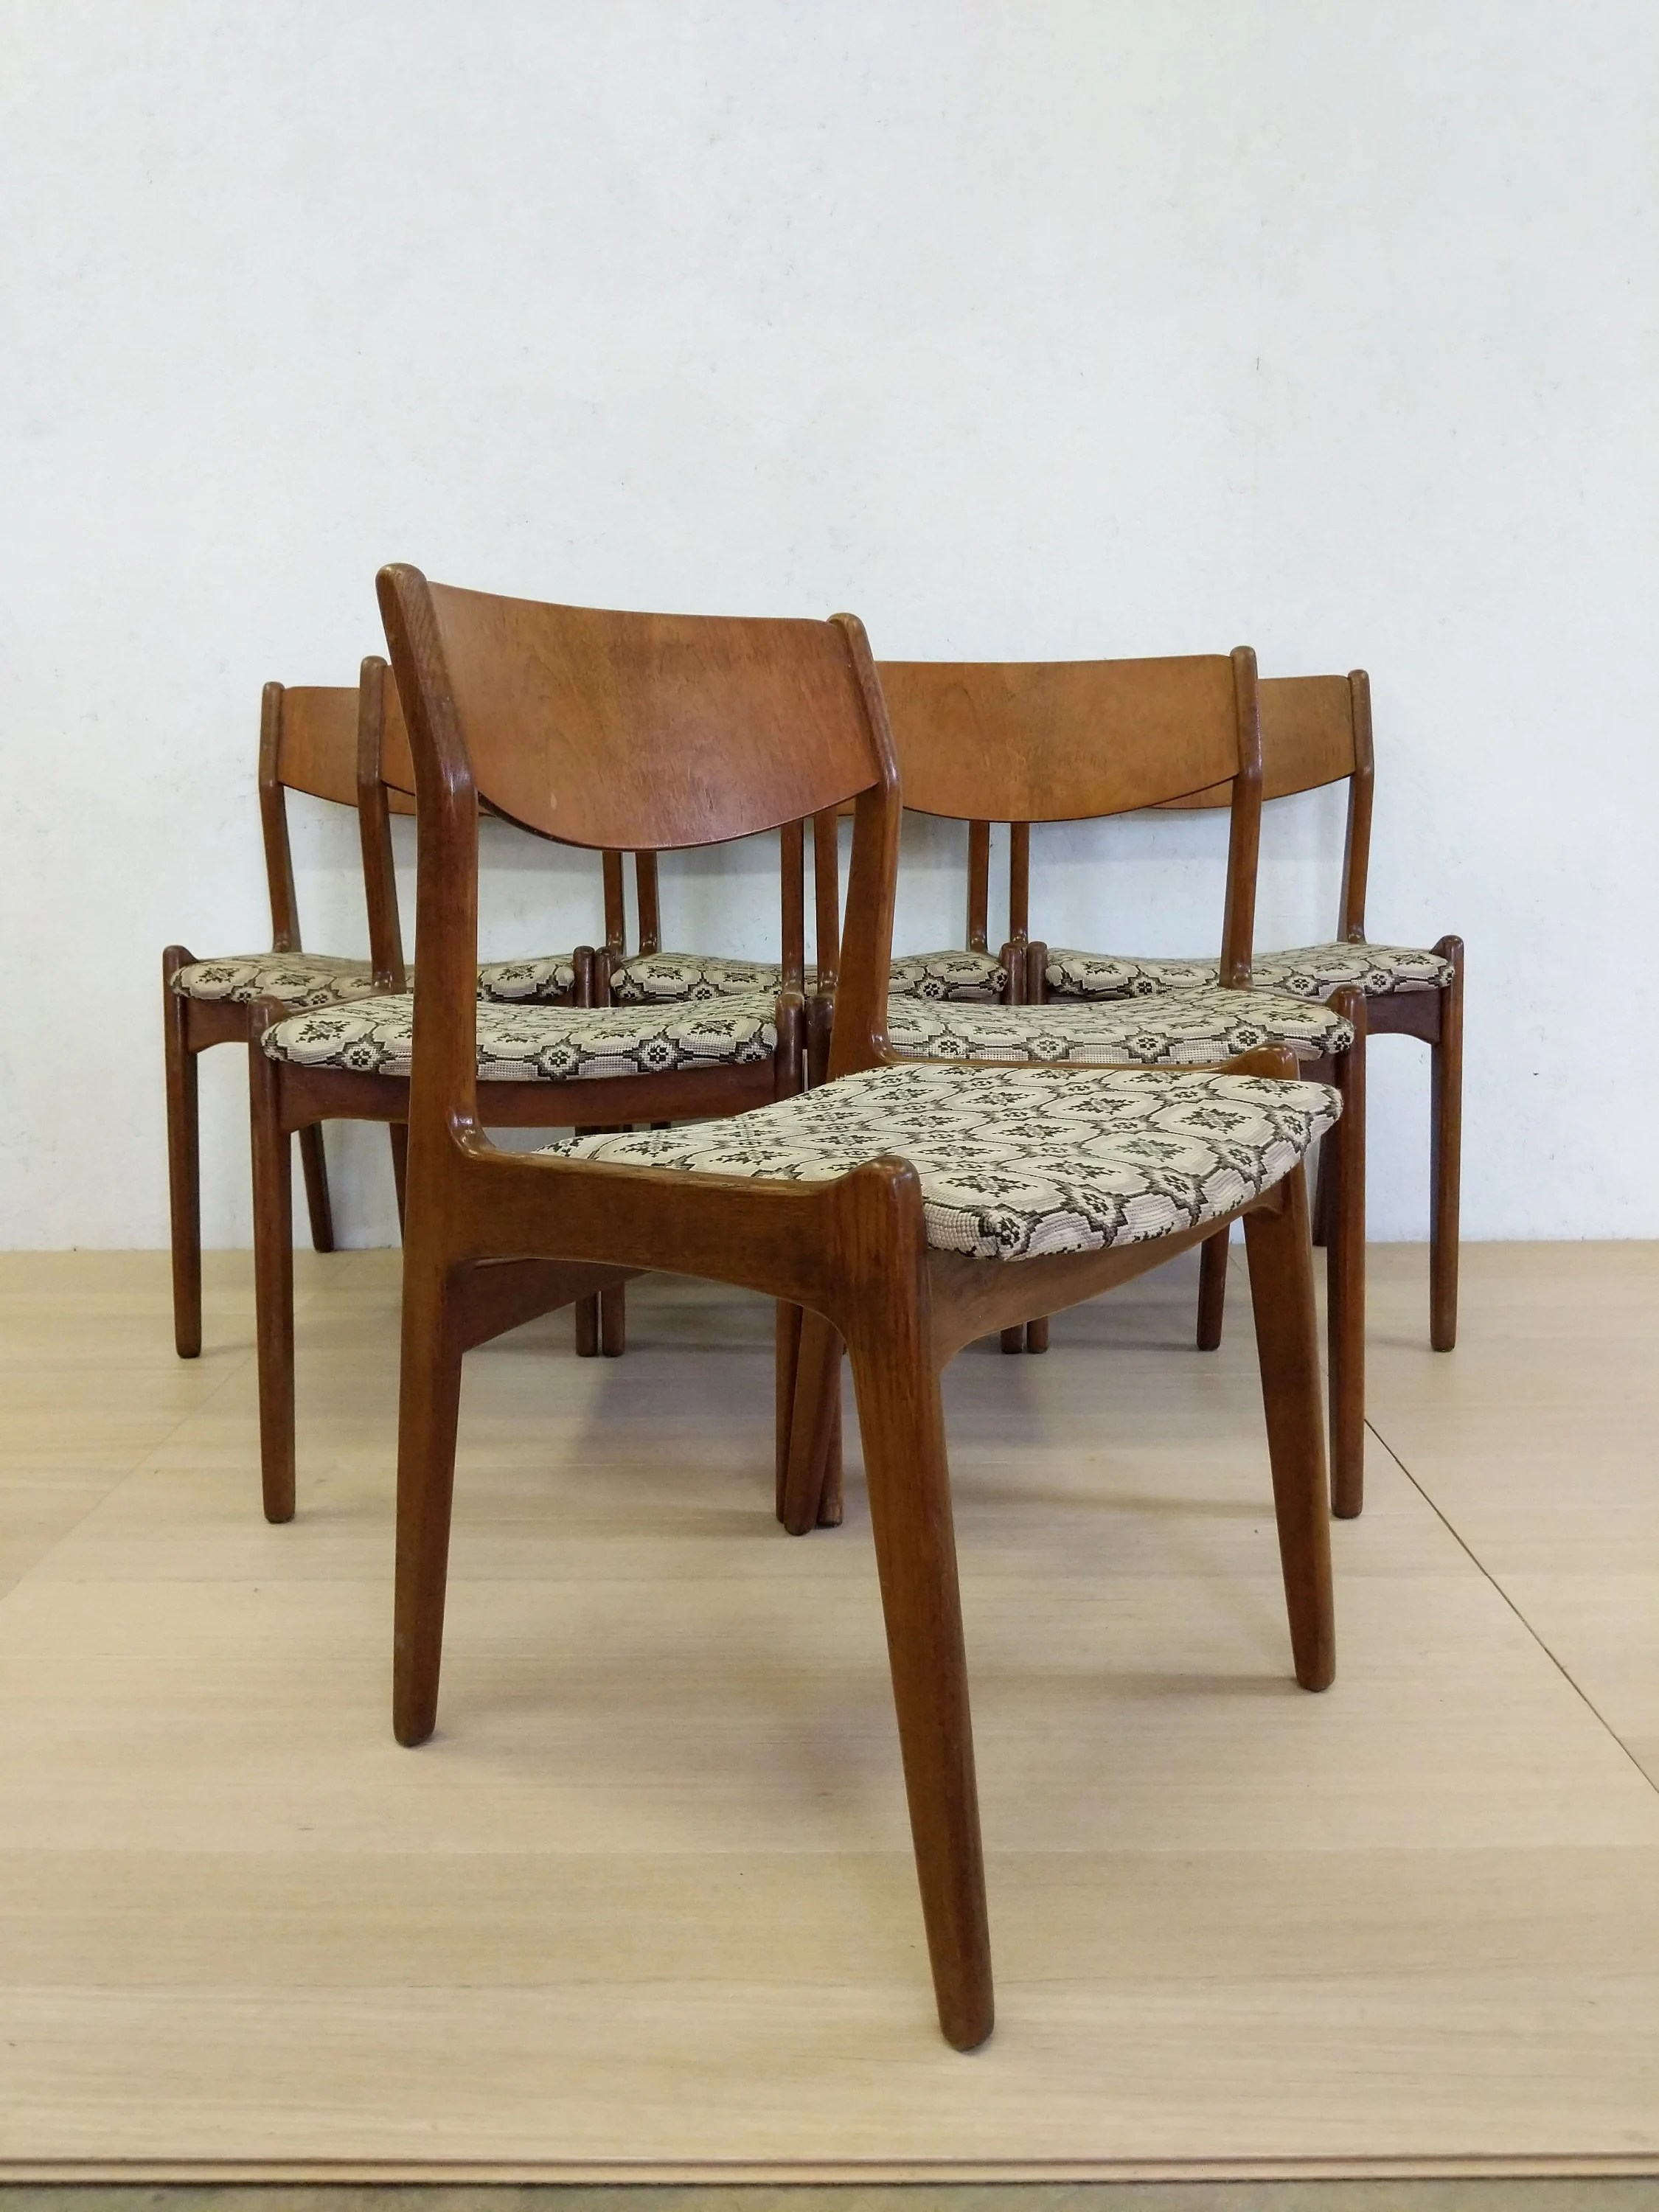 danish modern dining chairs blue folding chair covers set of 6 vintage soro free nyc etsy image 0